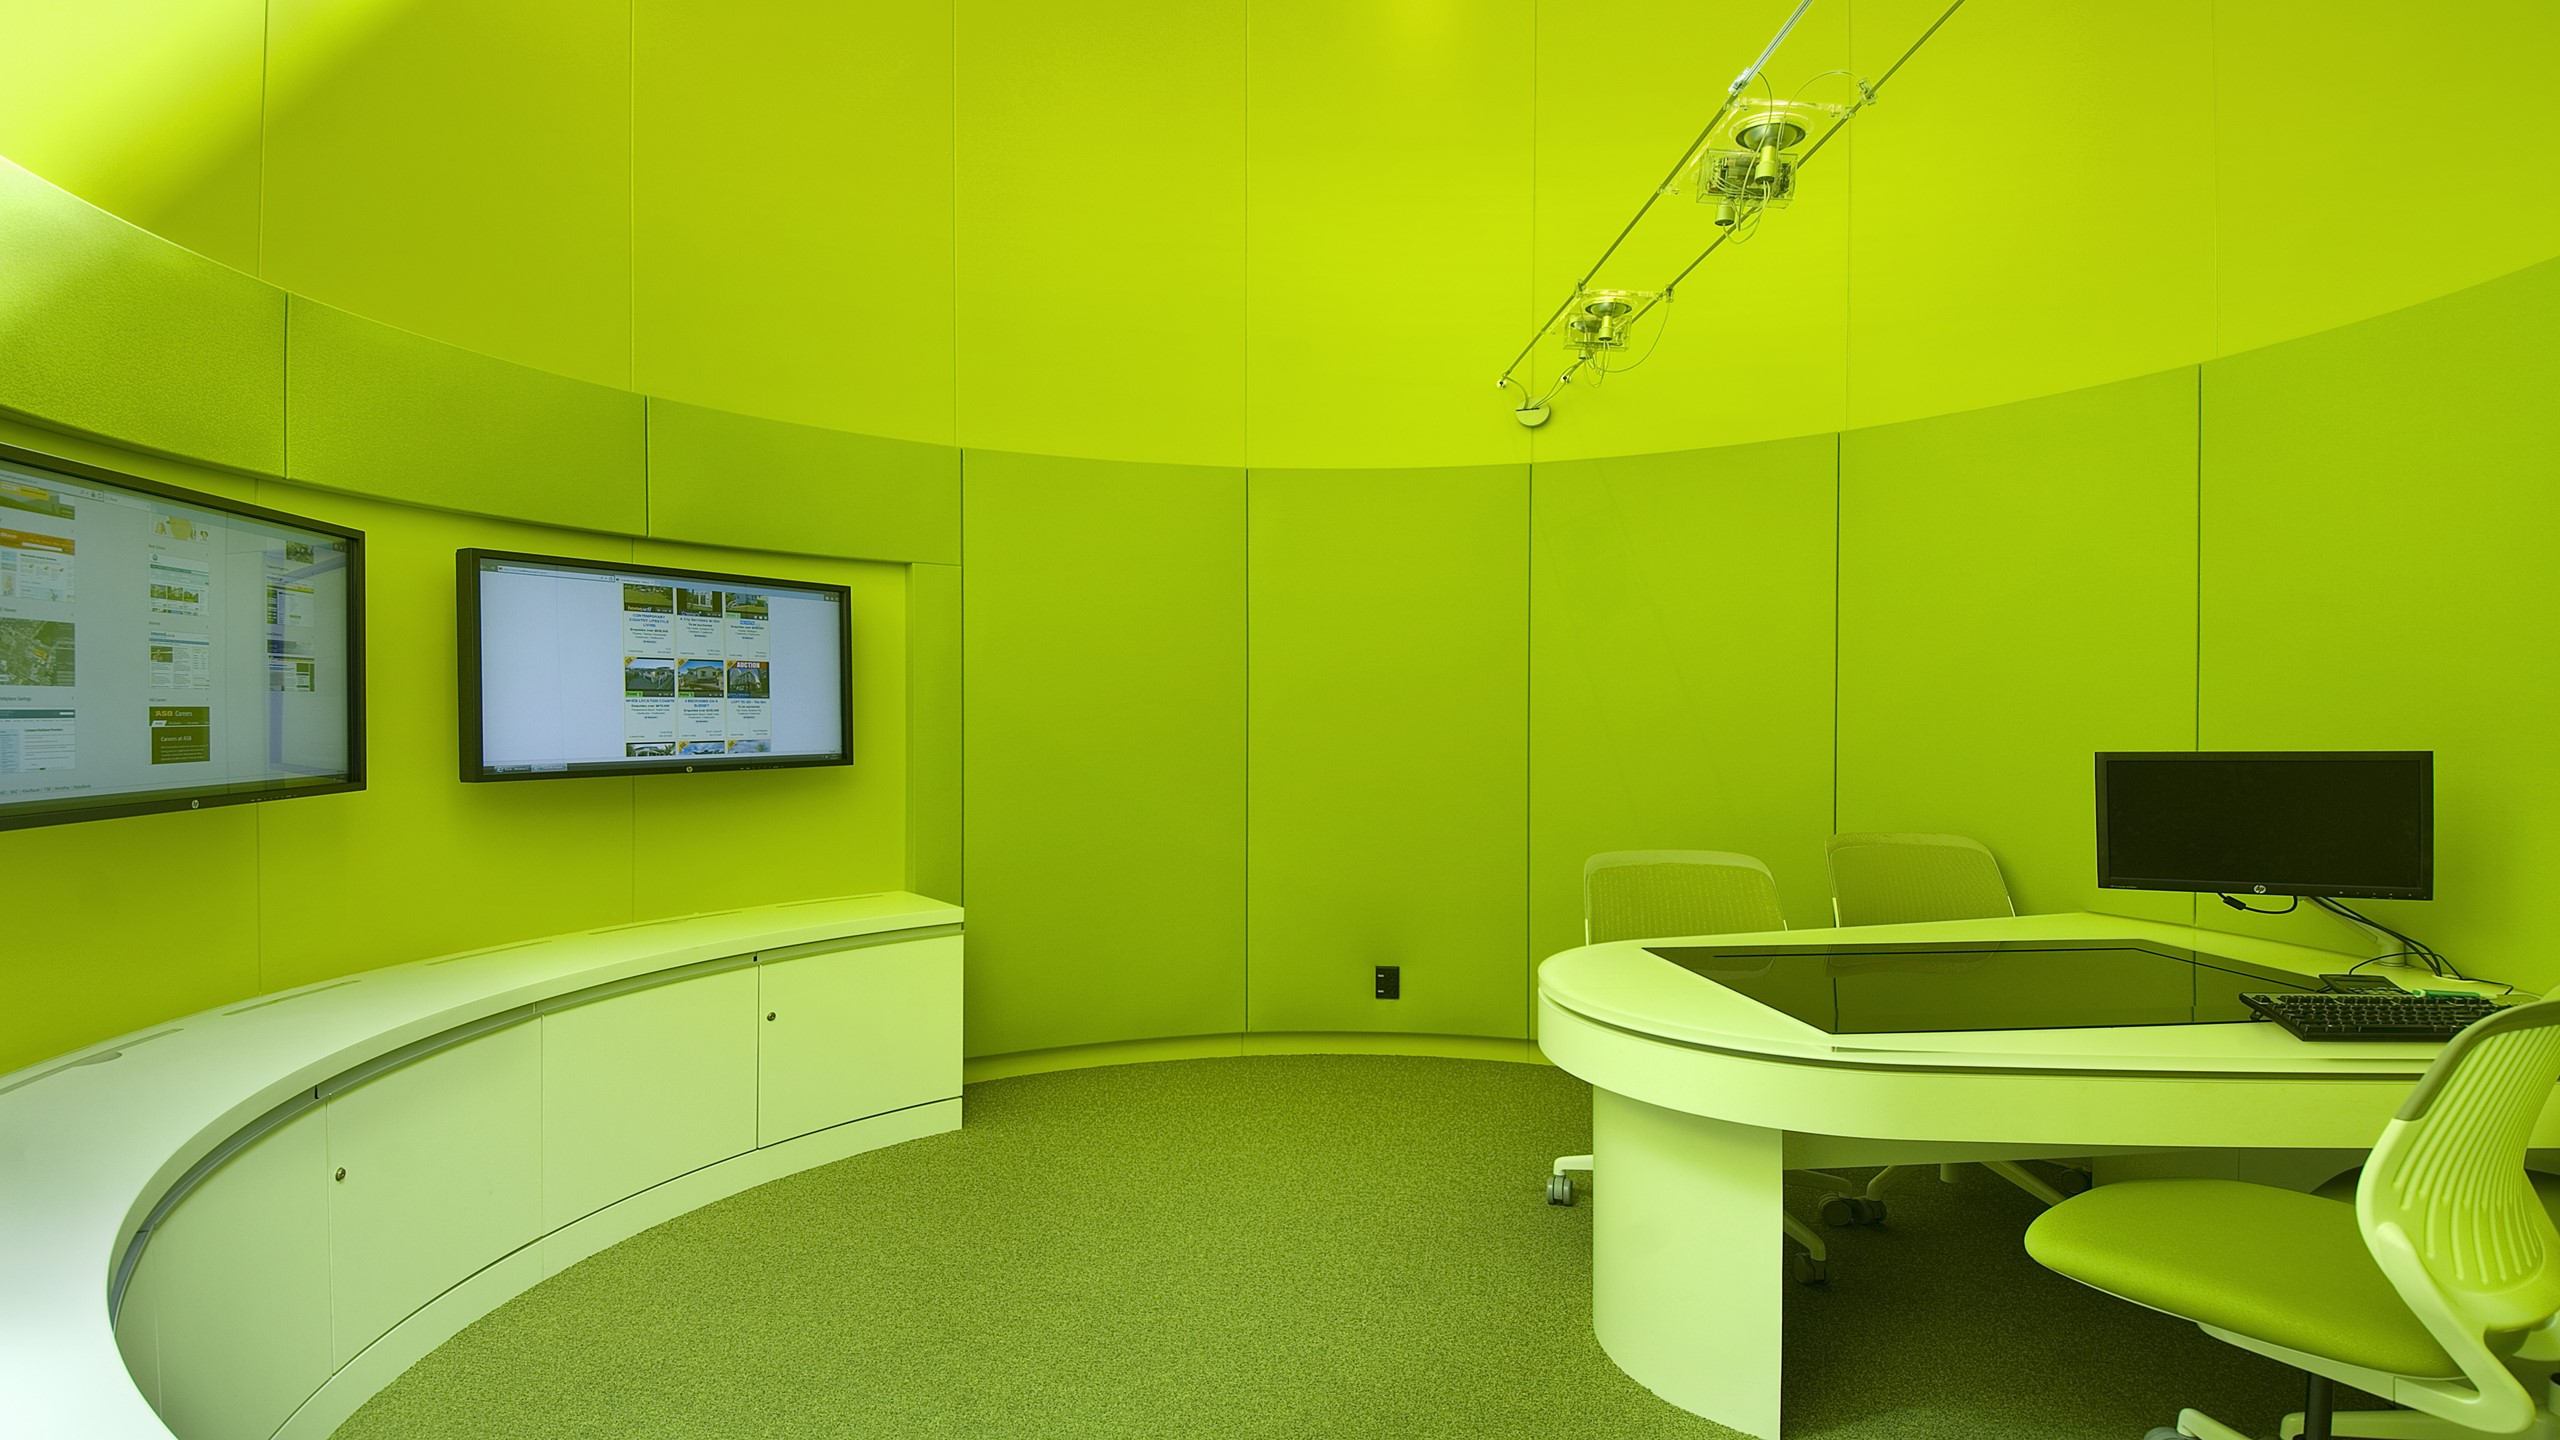 ASB North Wharf - Curved Snaptex stretched fabric wall system